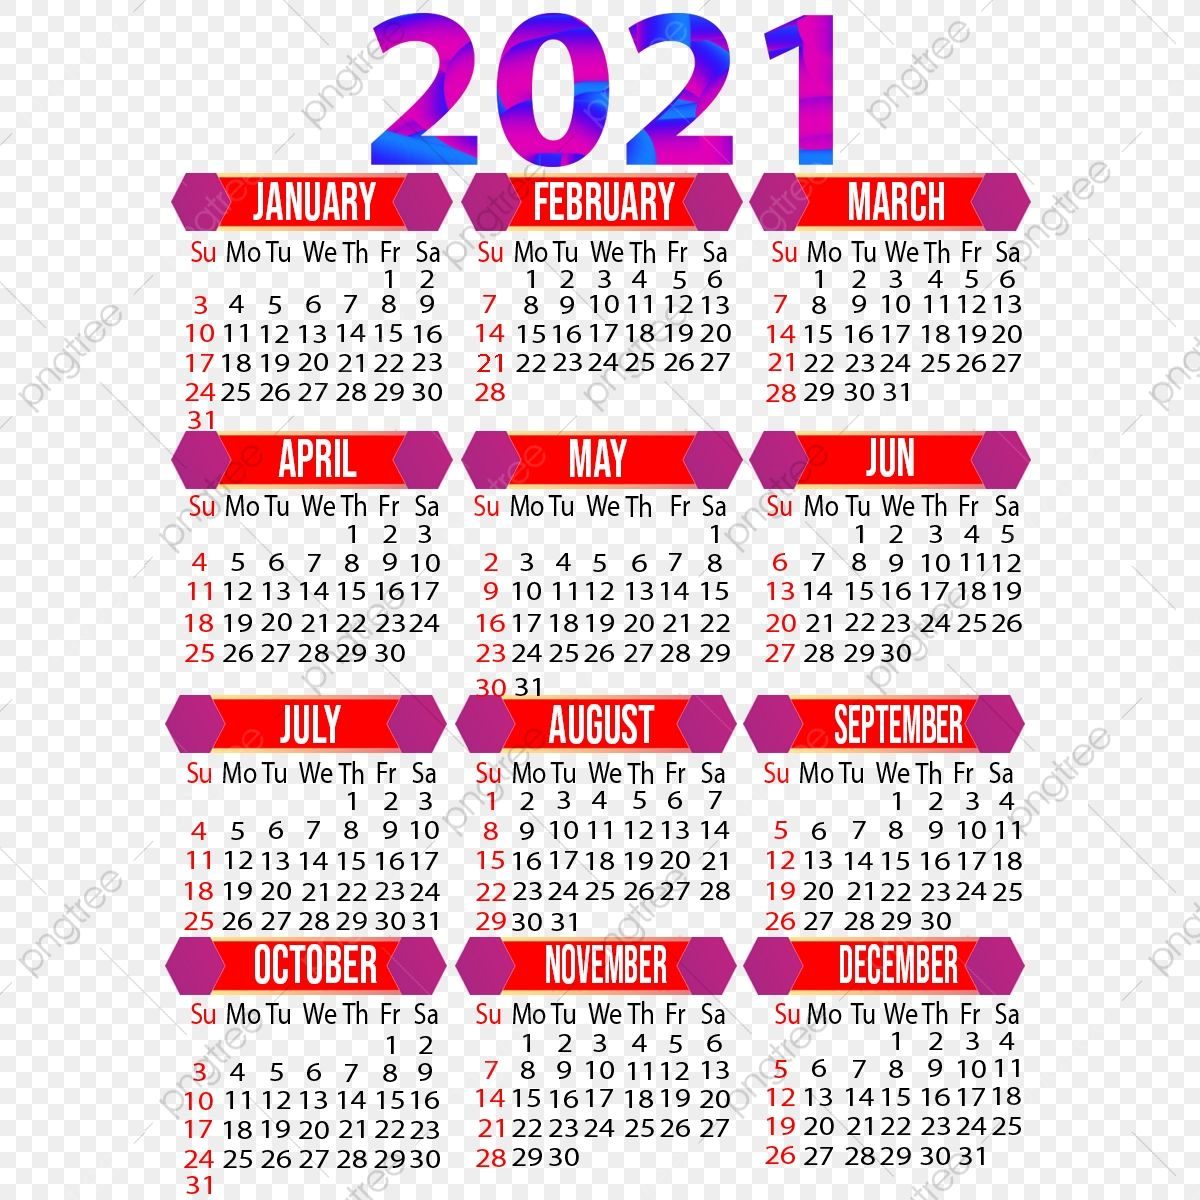 Year 2021 Creative Calendar Design 2021 2021 Calendar Year Png Transparent Clipart Image And Psd File For Free Download In 2020 Creative Calendar Calendar Design Calendar Design Template